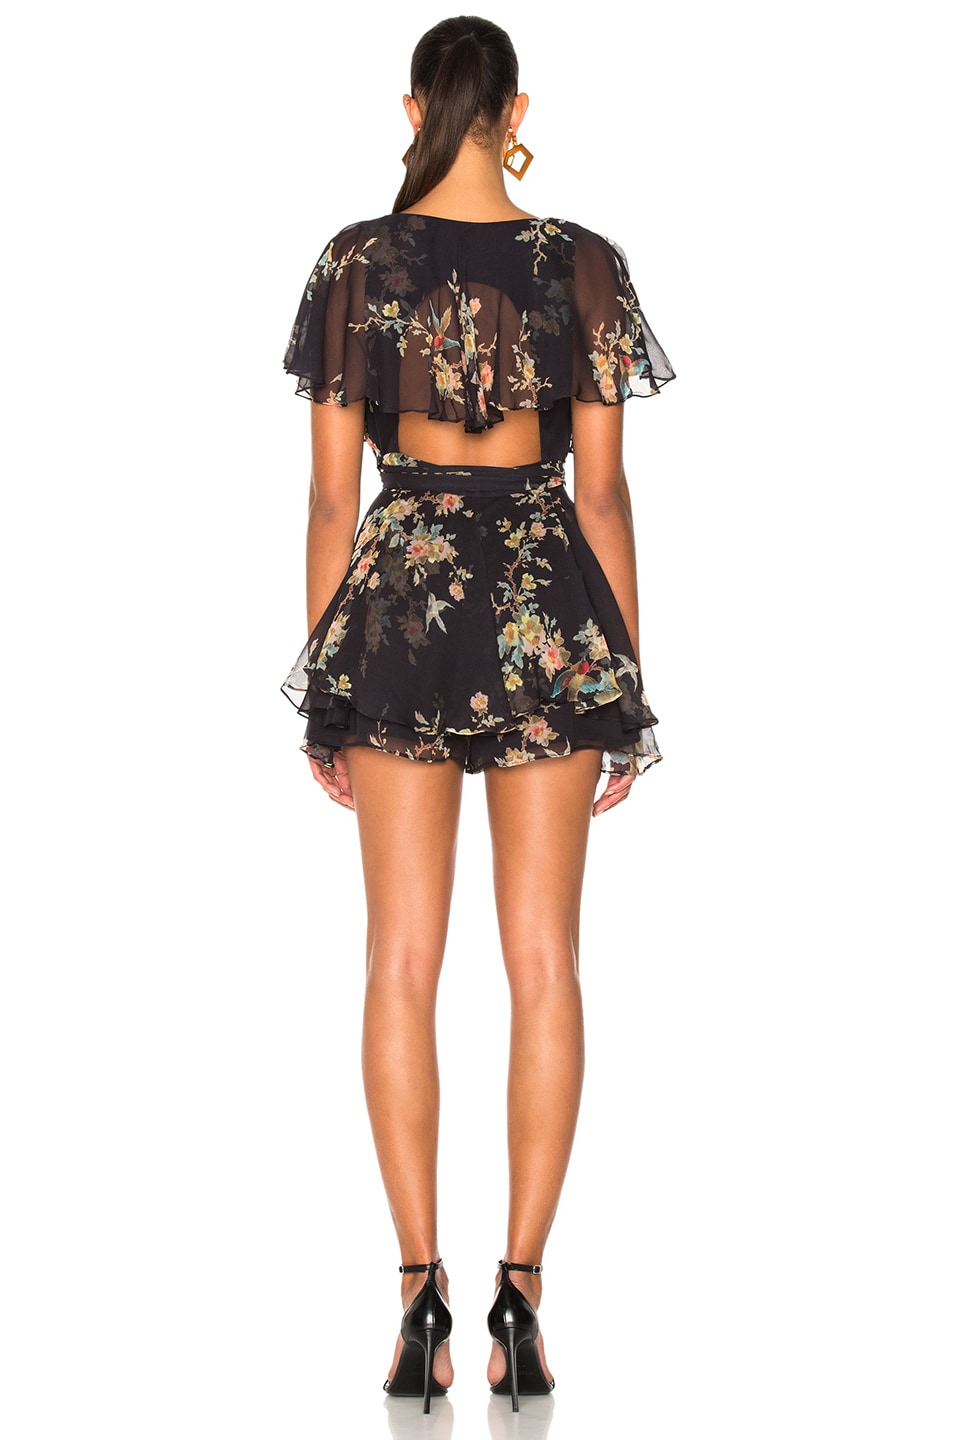 d7d31781b4f Image 4 of Zimmermann Maples Wrap Playsuit in Black Bird Floral